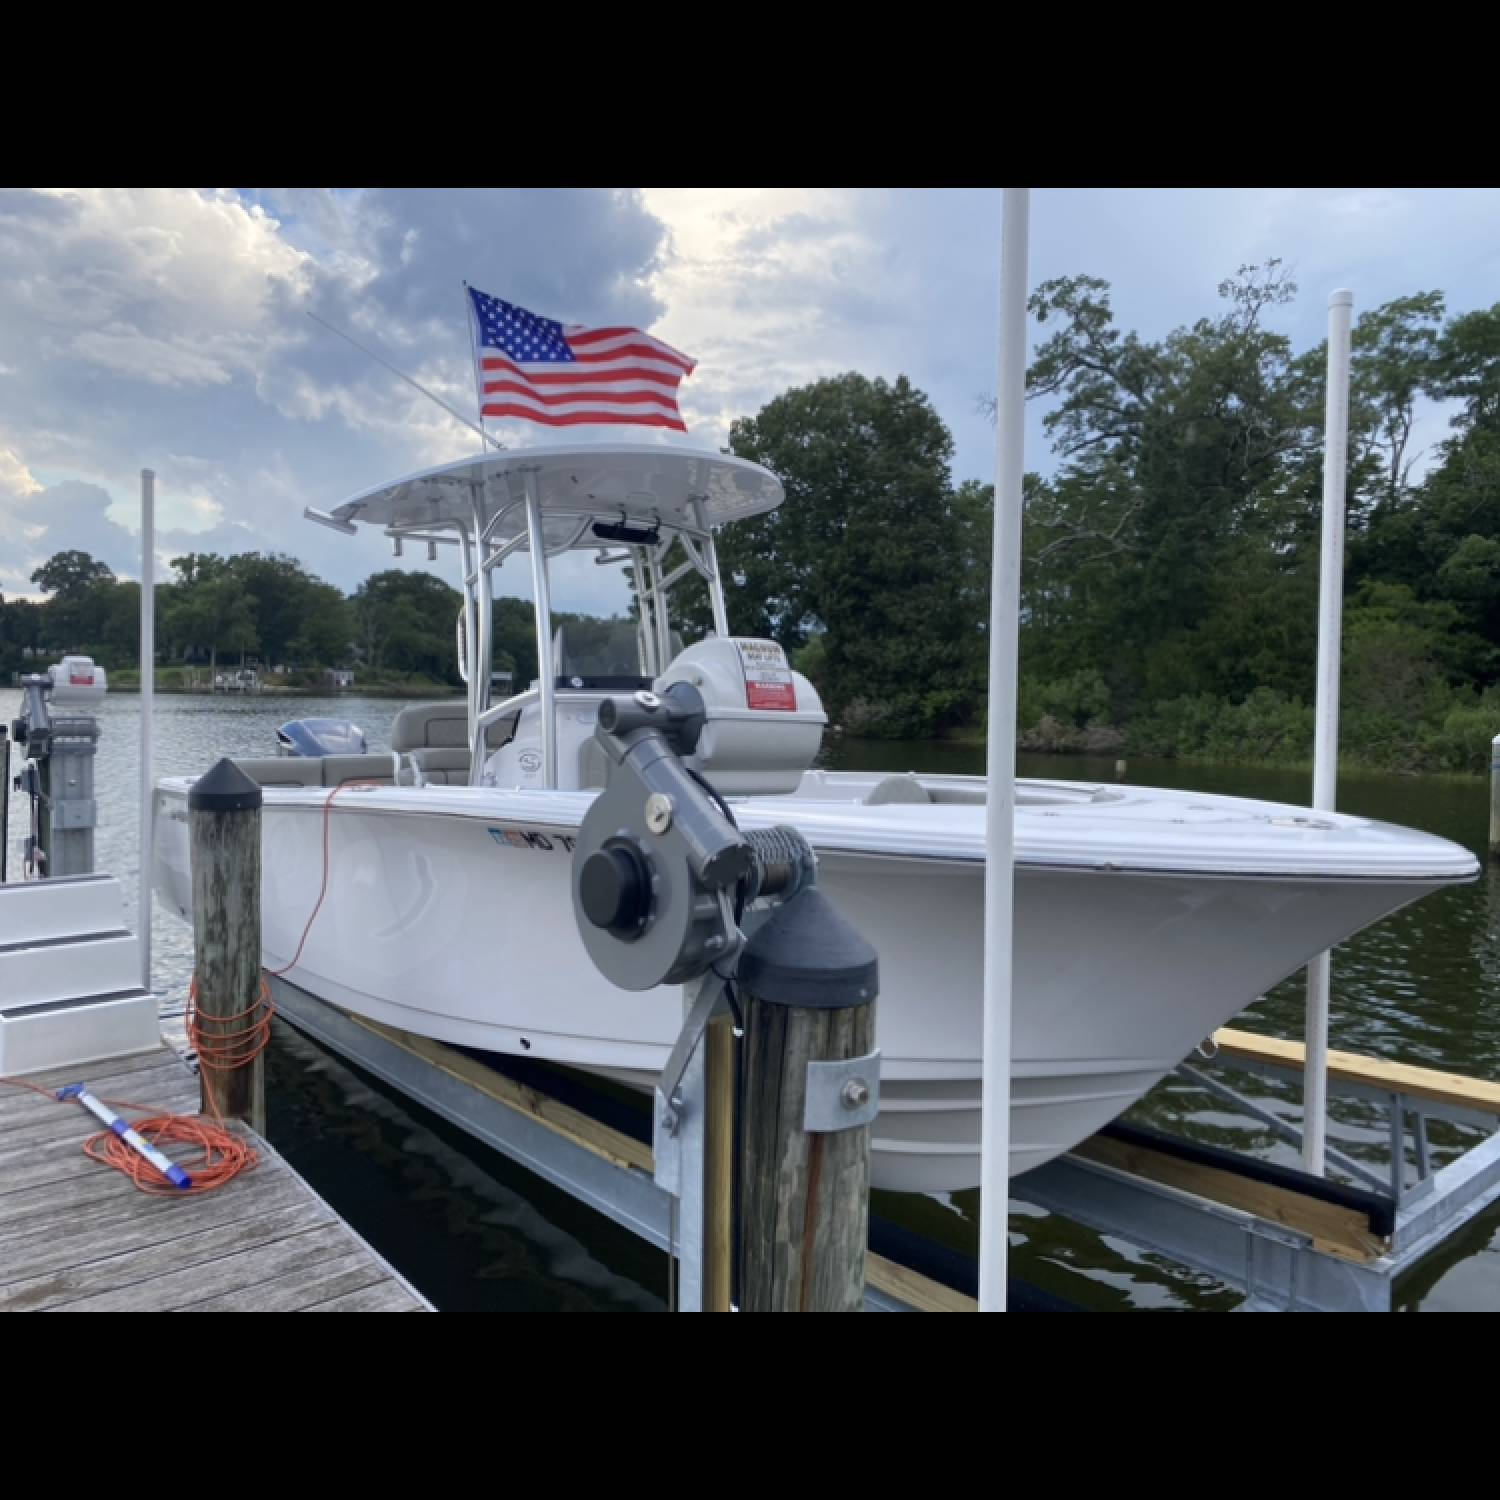 Title: New Sportsman on a New Lift. Ready to Go! - On board their Sportsman Heritage 231 Center Console - Location: Solomon Island. Participating in the Photo Contest #SportsmanSeptember2021